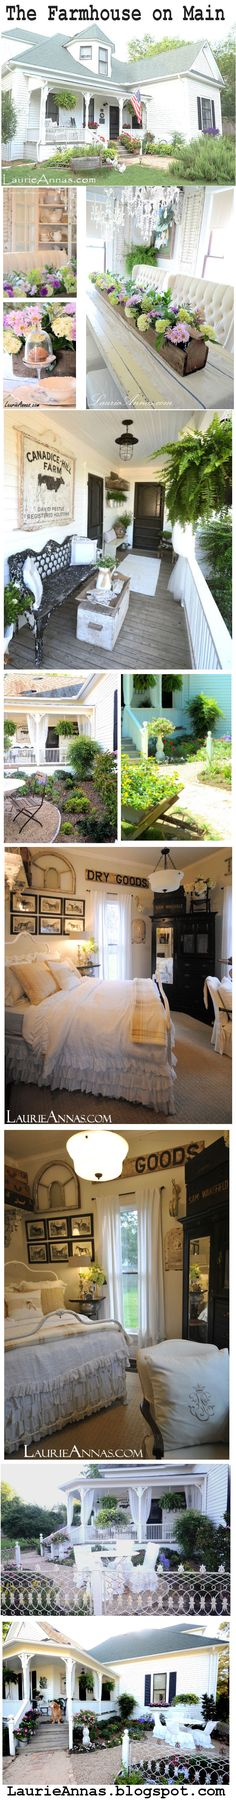 """Our little Texas """"Farmhouse on Main"""" (TM) in Canton, Texas.  We developed a line of Farmhouse on Main products that you can shop at LaurieAnna's Vintage Home or online at laurieannas.com"""